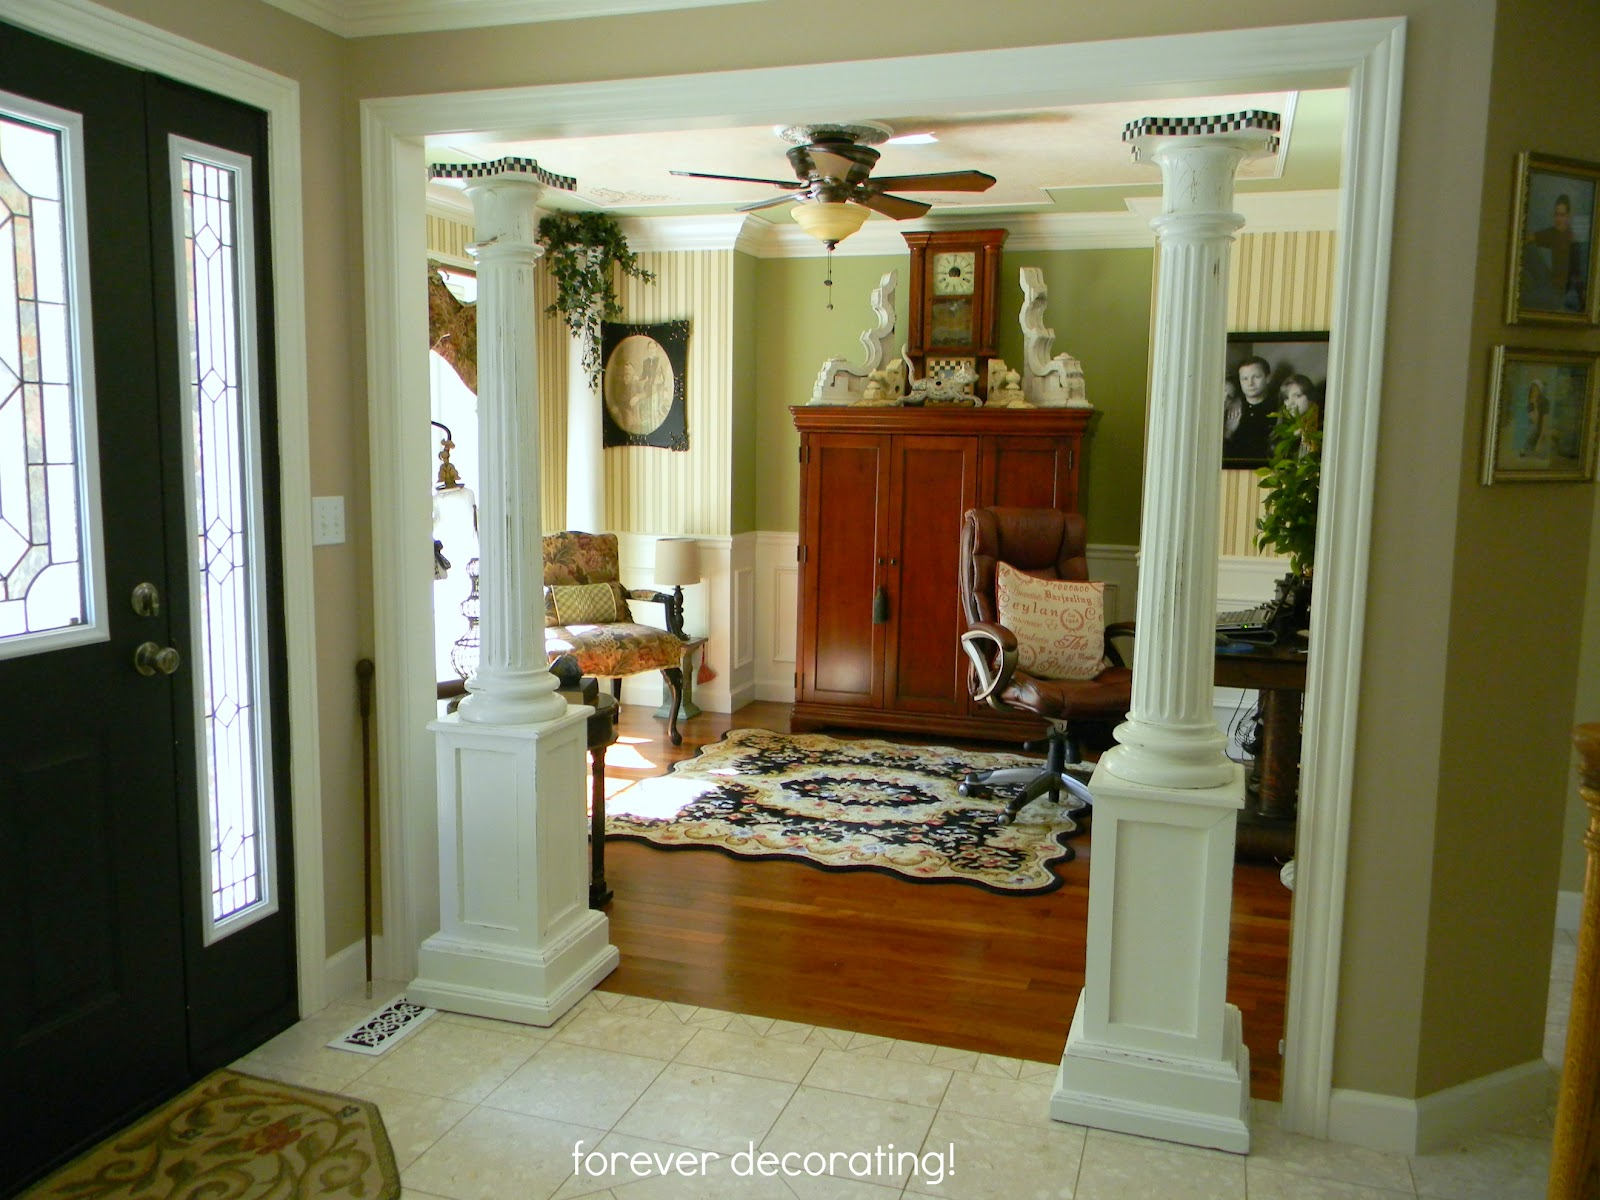 Look you can see another column in the background! & The Rest Of The Story...on our Pillars! | Jojos Decorating Dilemmas